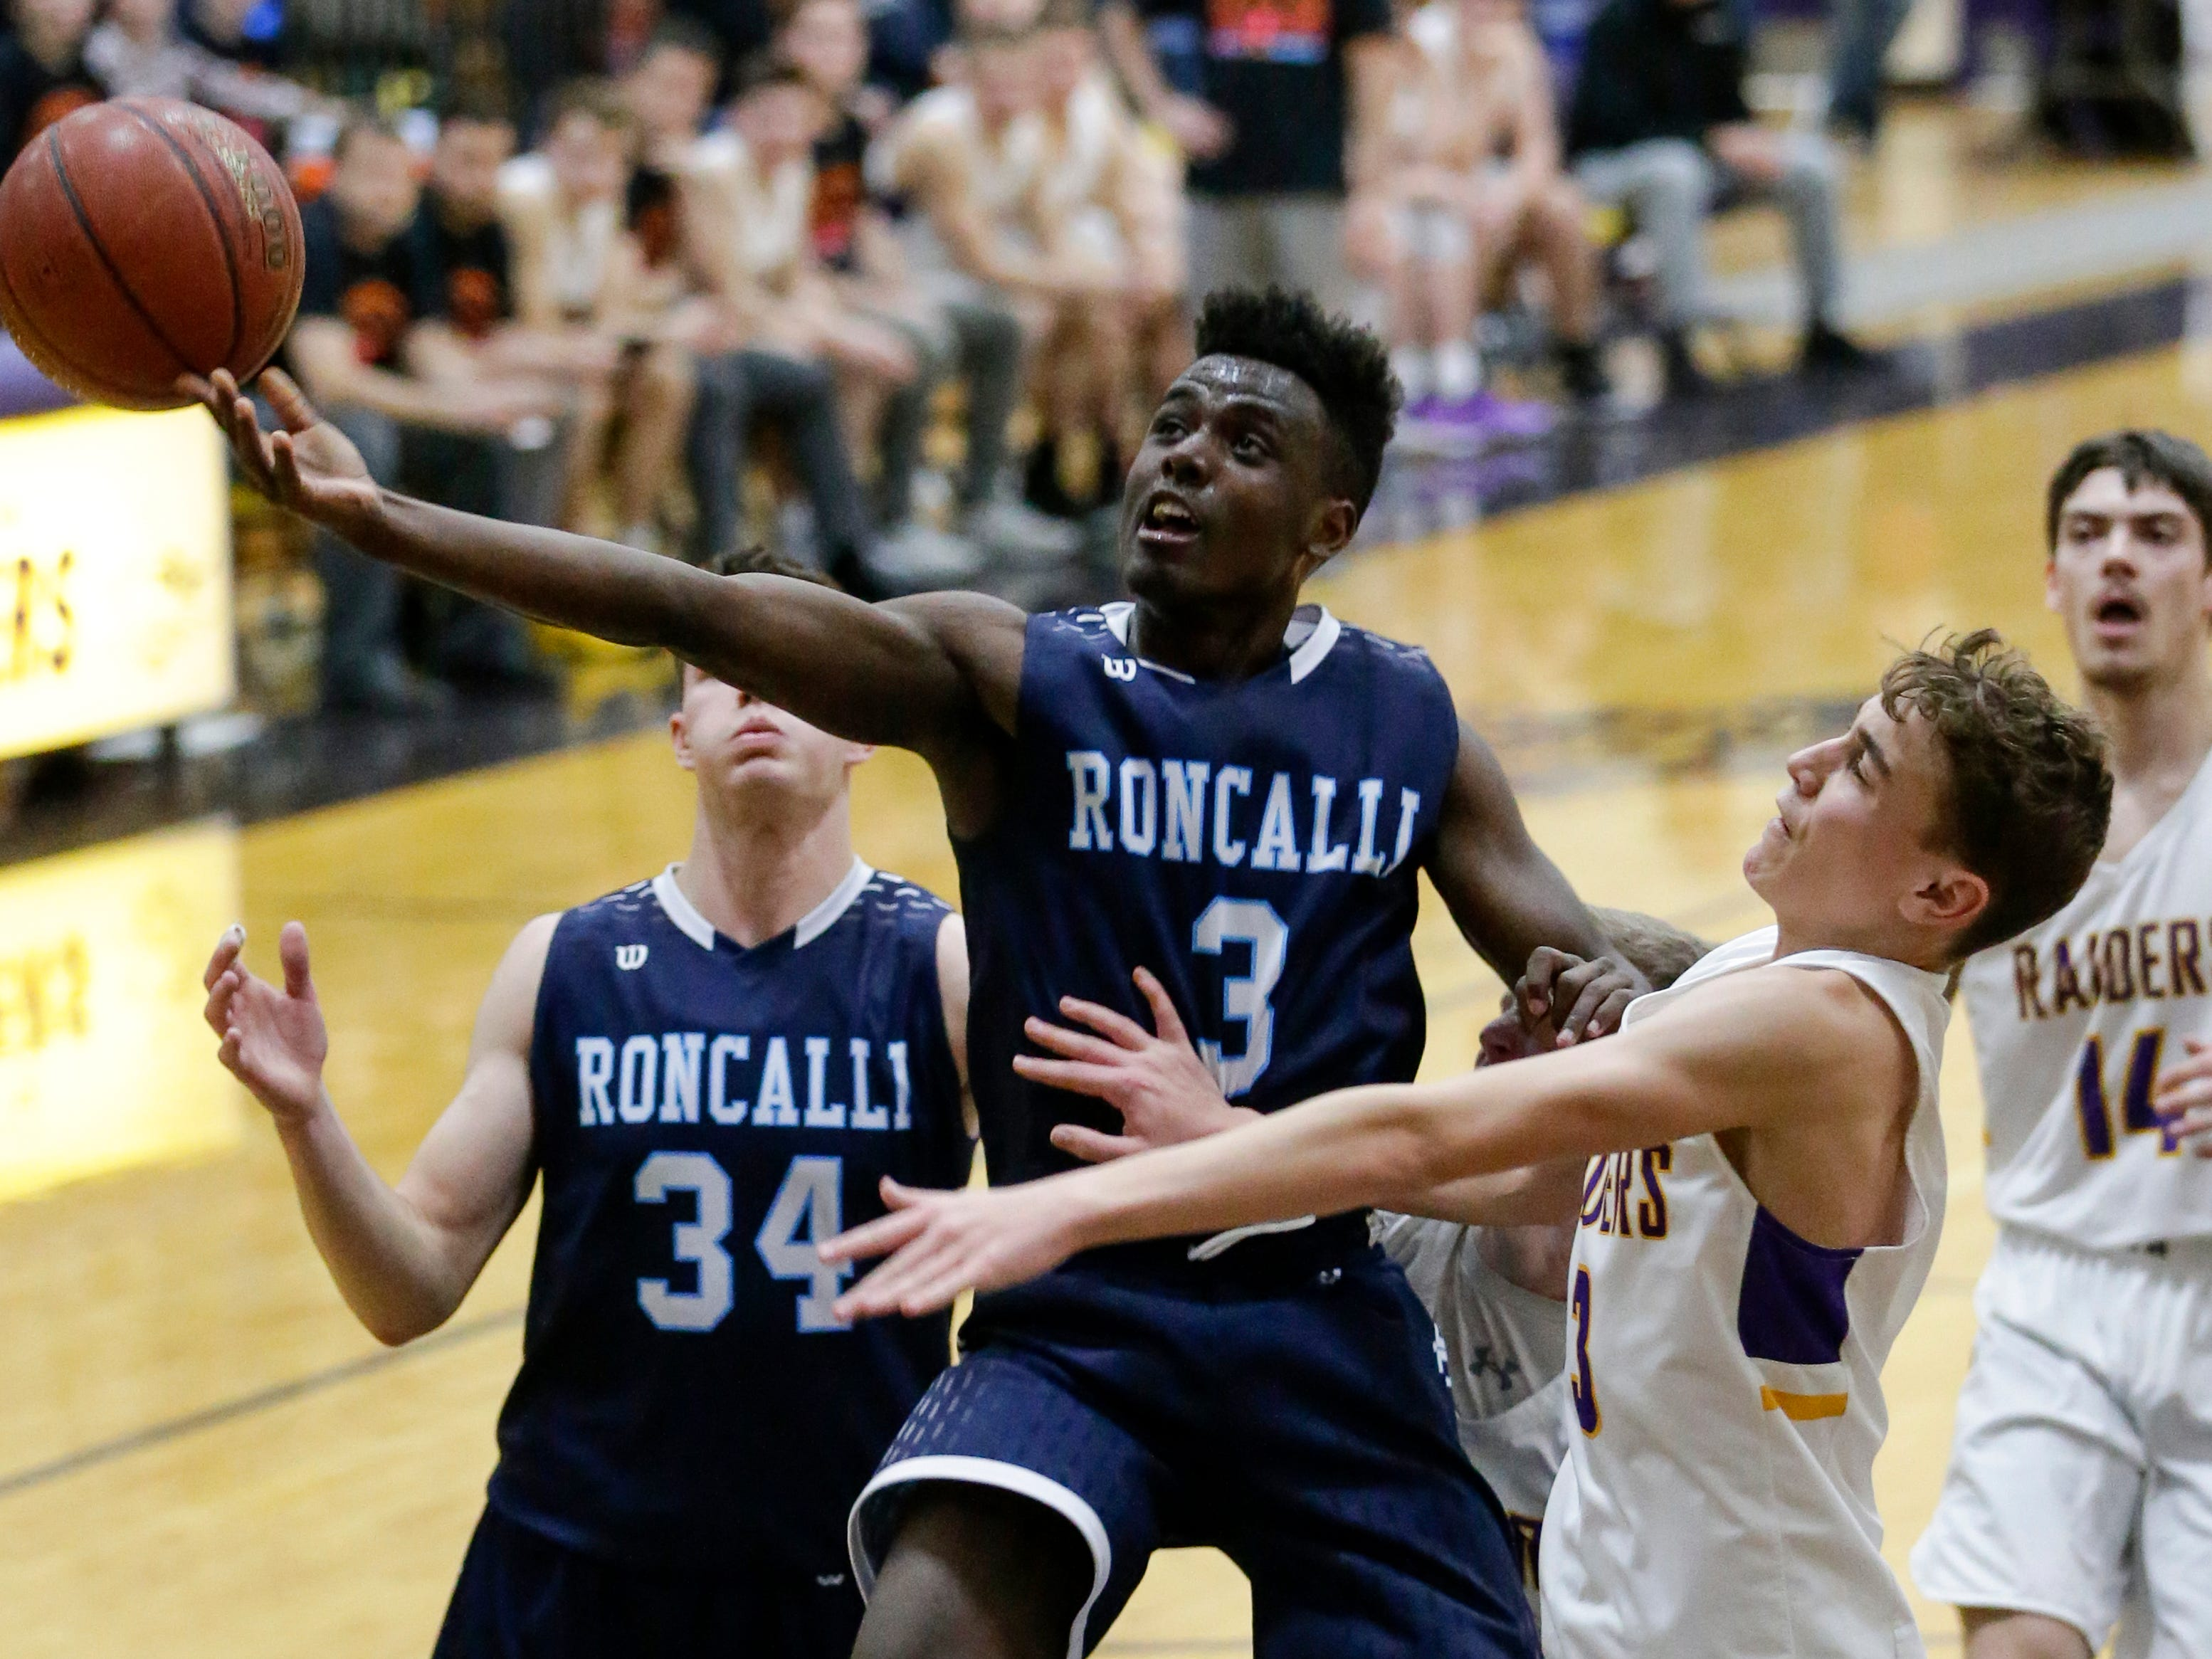 Roncalli's Chombi Lambert (3) shoots against Two Rivers at Two Rivers High School Friday, February 1, 2019, in Two Rivers, Wis. Joshua Clark/USA TODAY NETWORK-Wisconsin